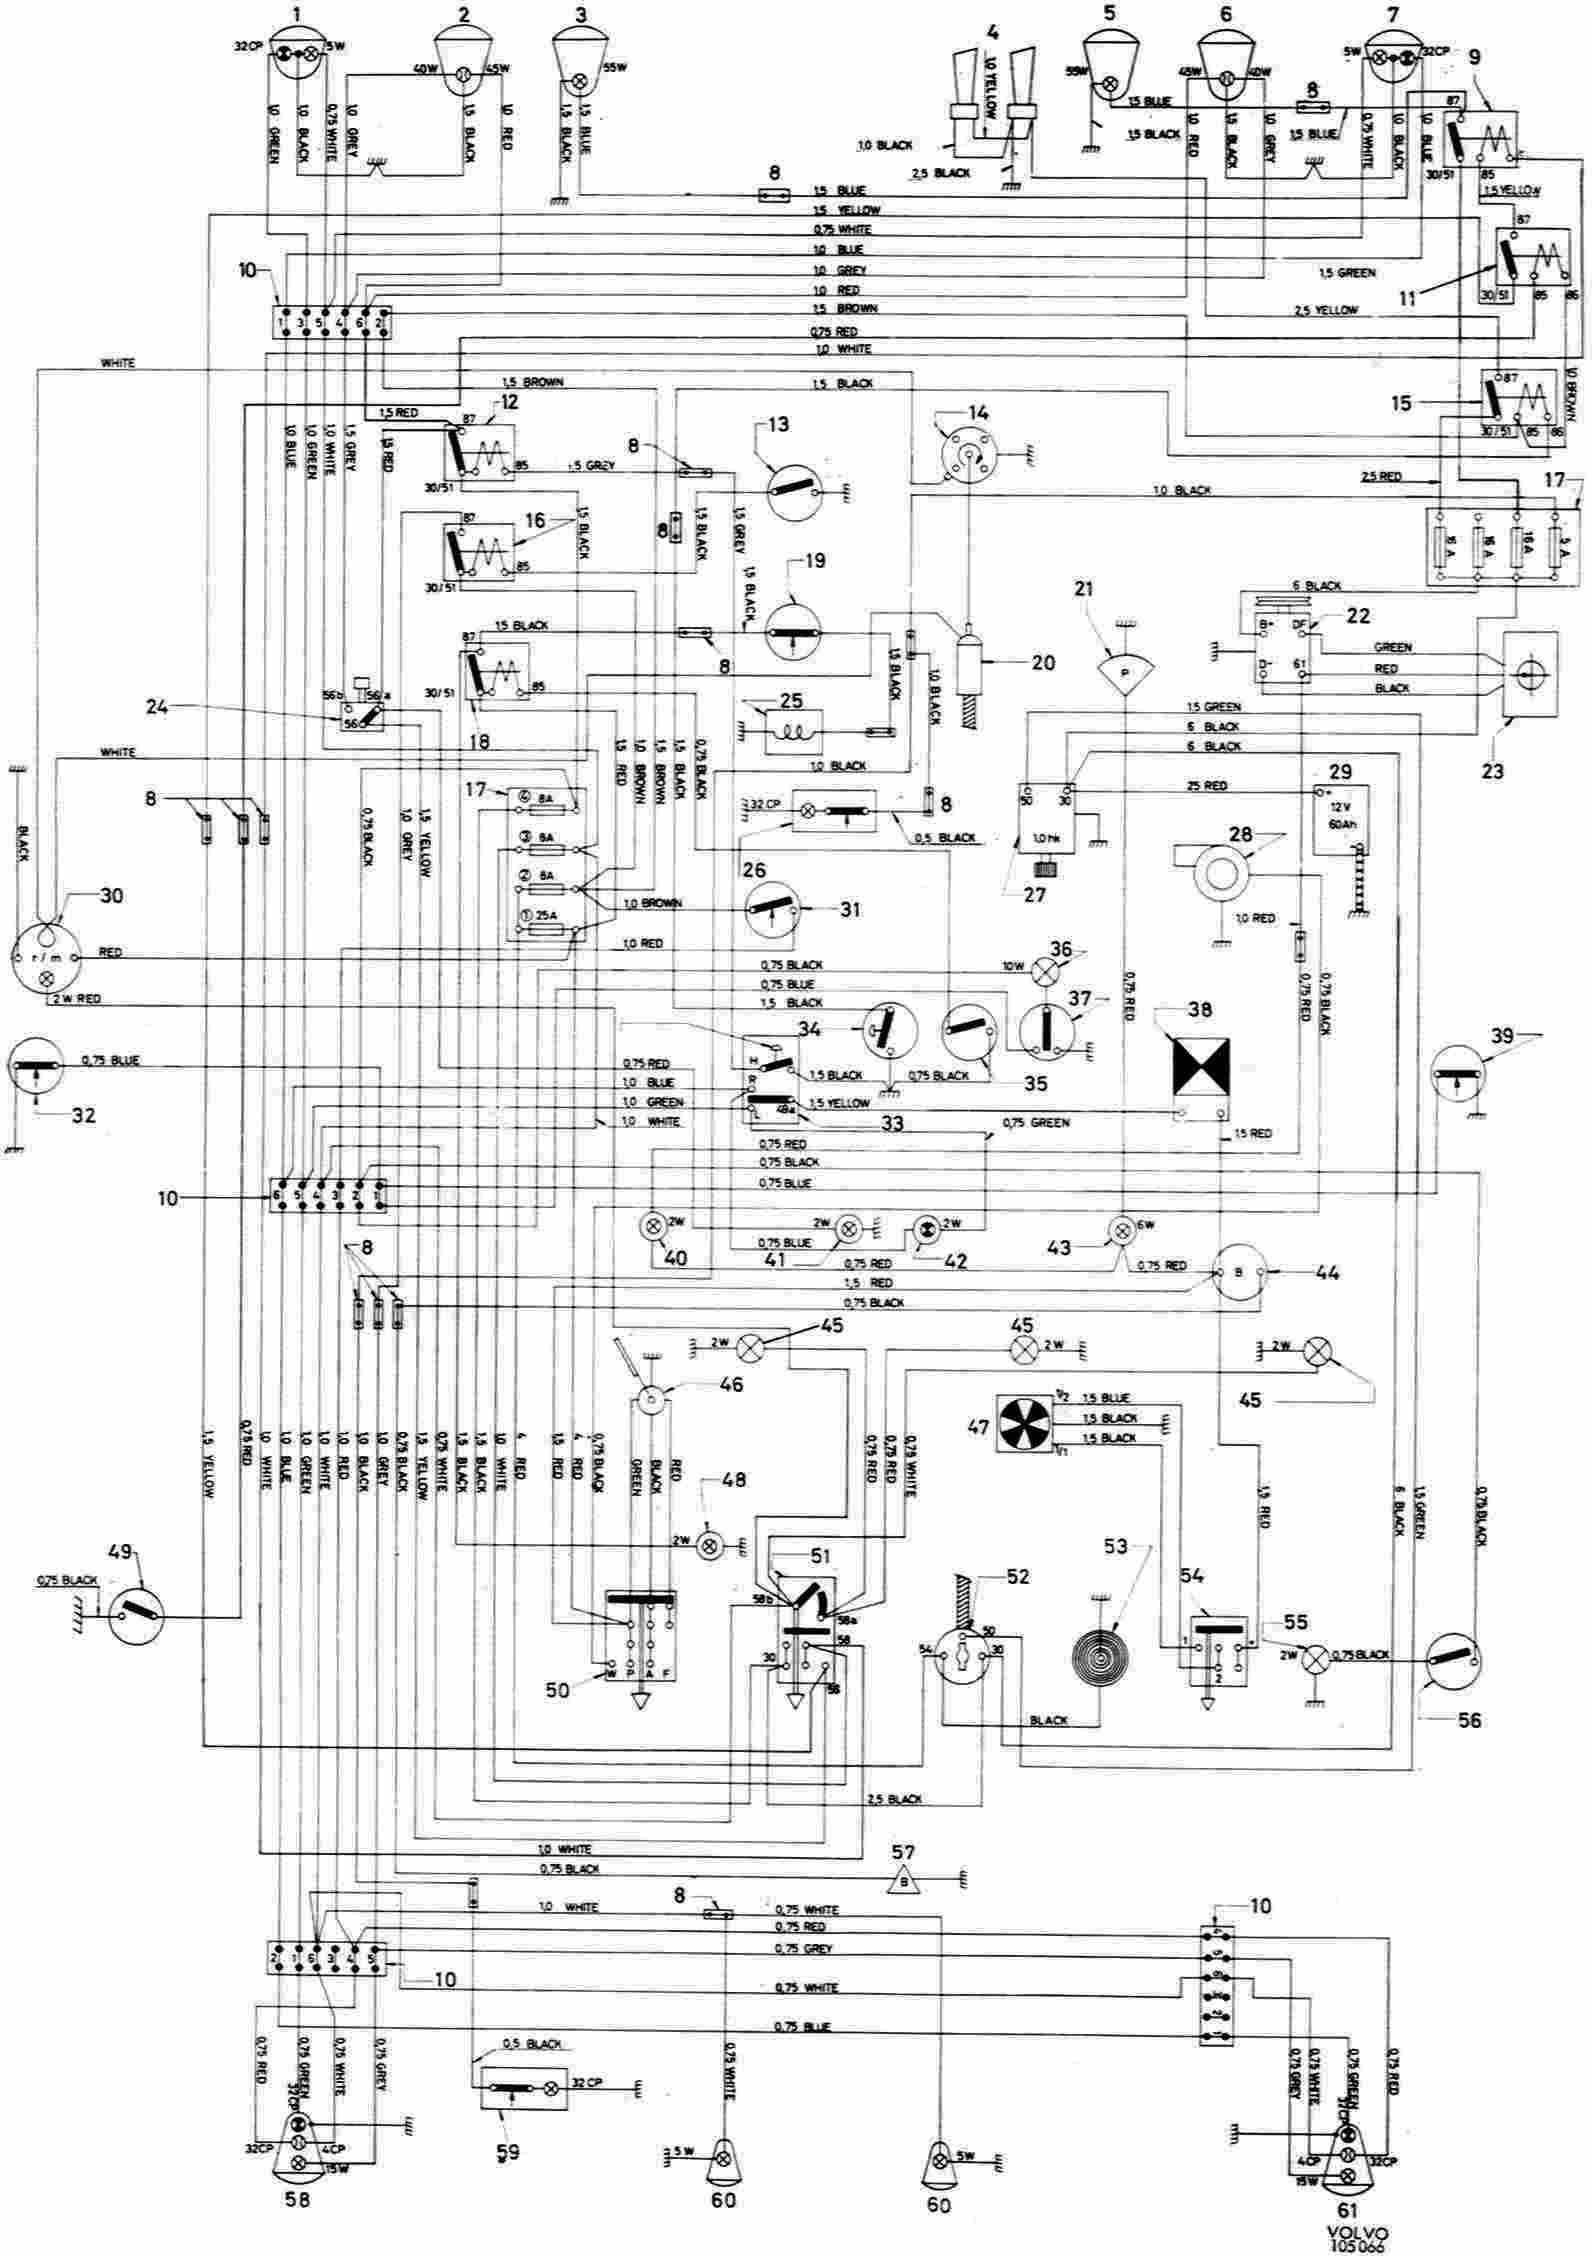 Saab 9 3 Electrical Diagram